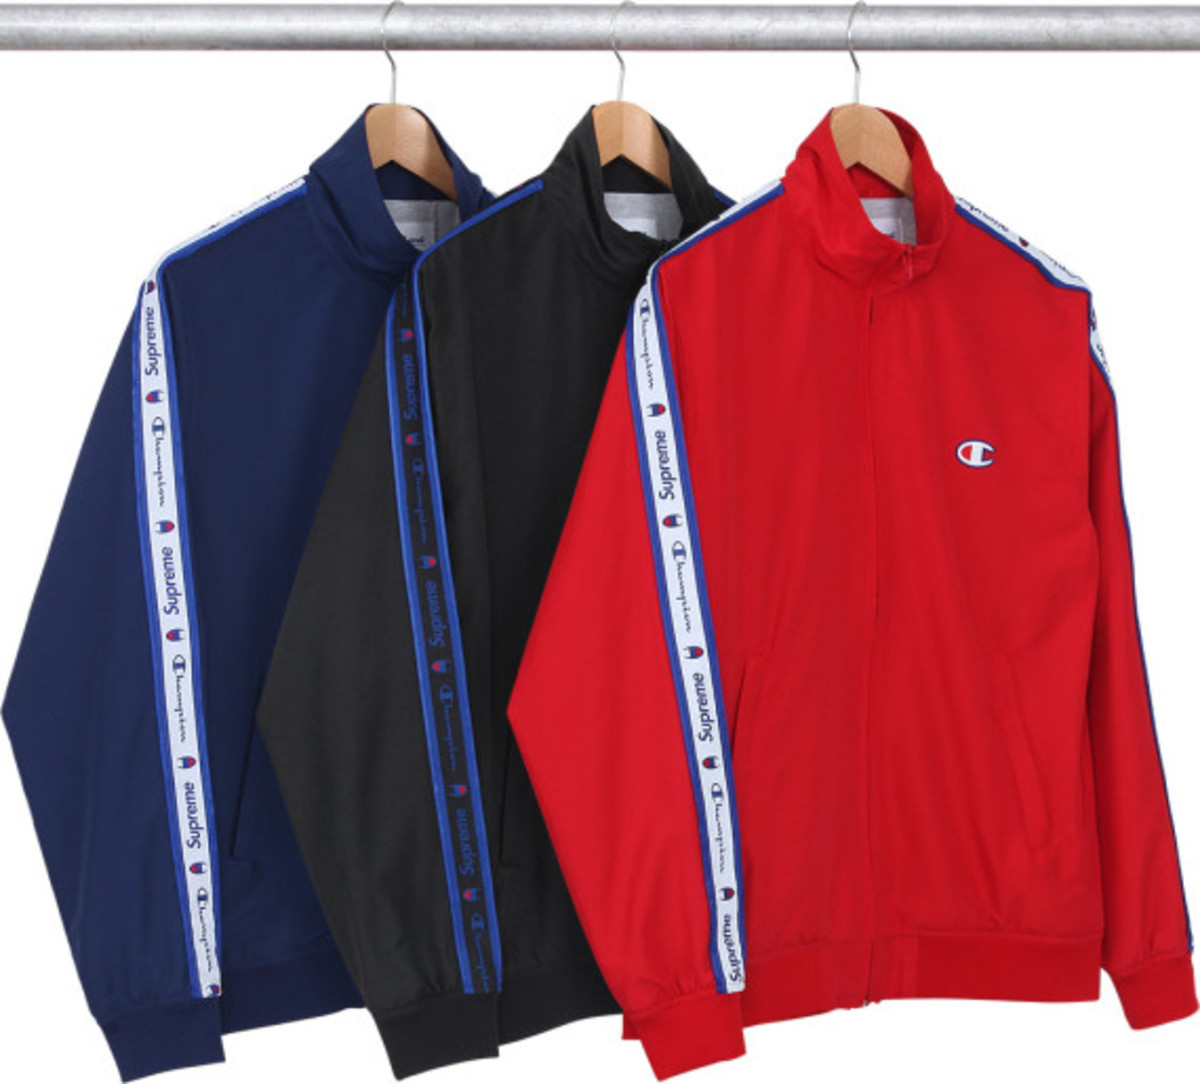 b5844c709a1cf Supreme x Champion Fall Winter 2014 Collection - Freshness Mag